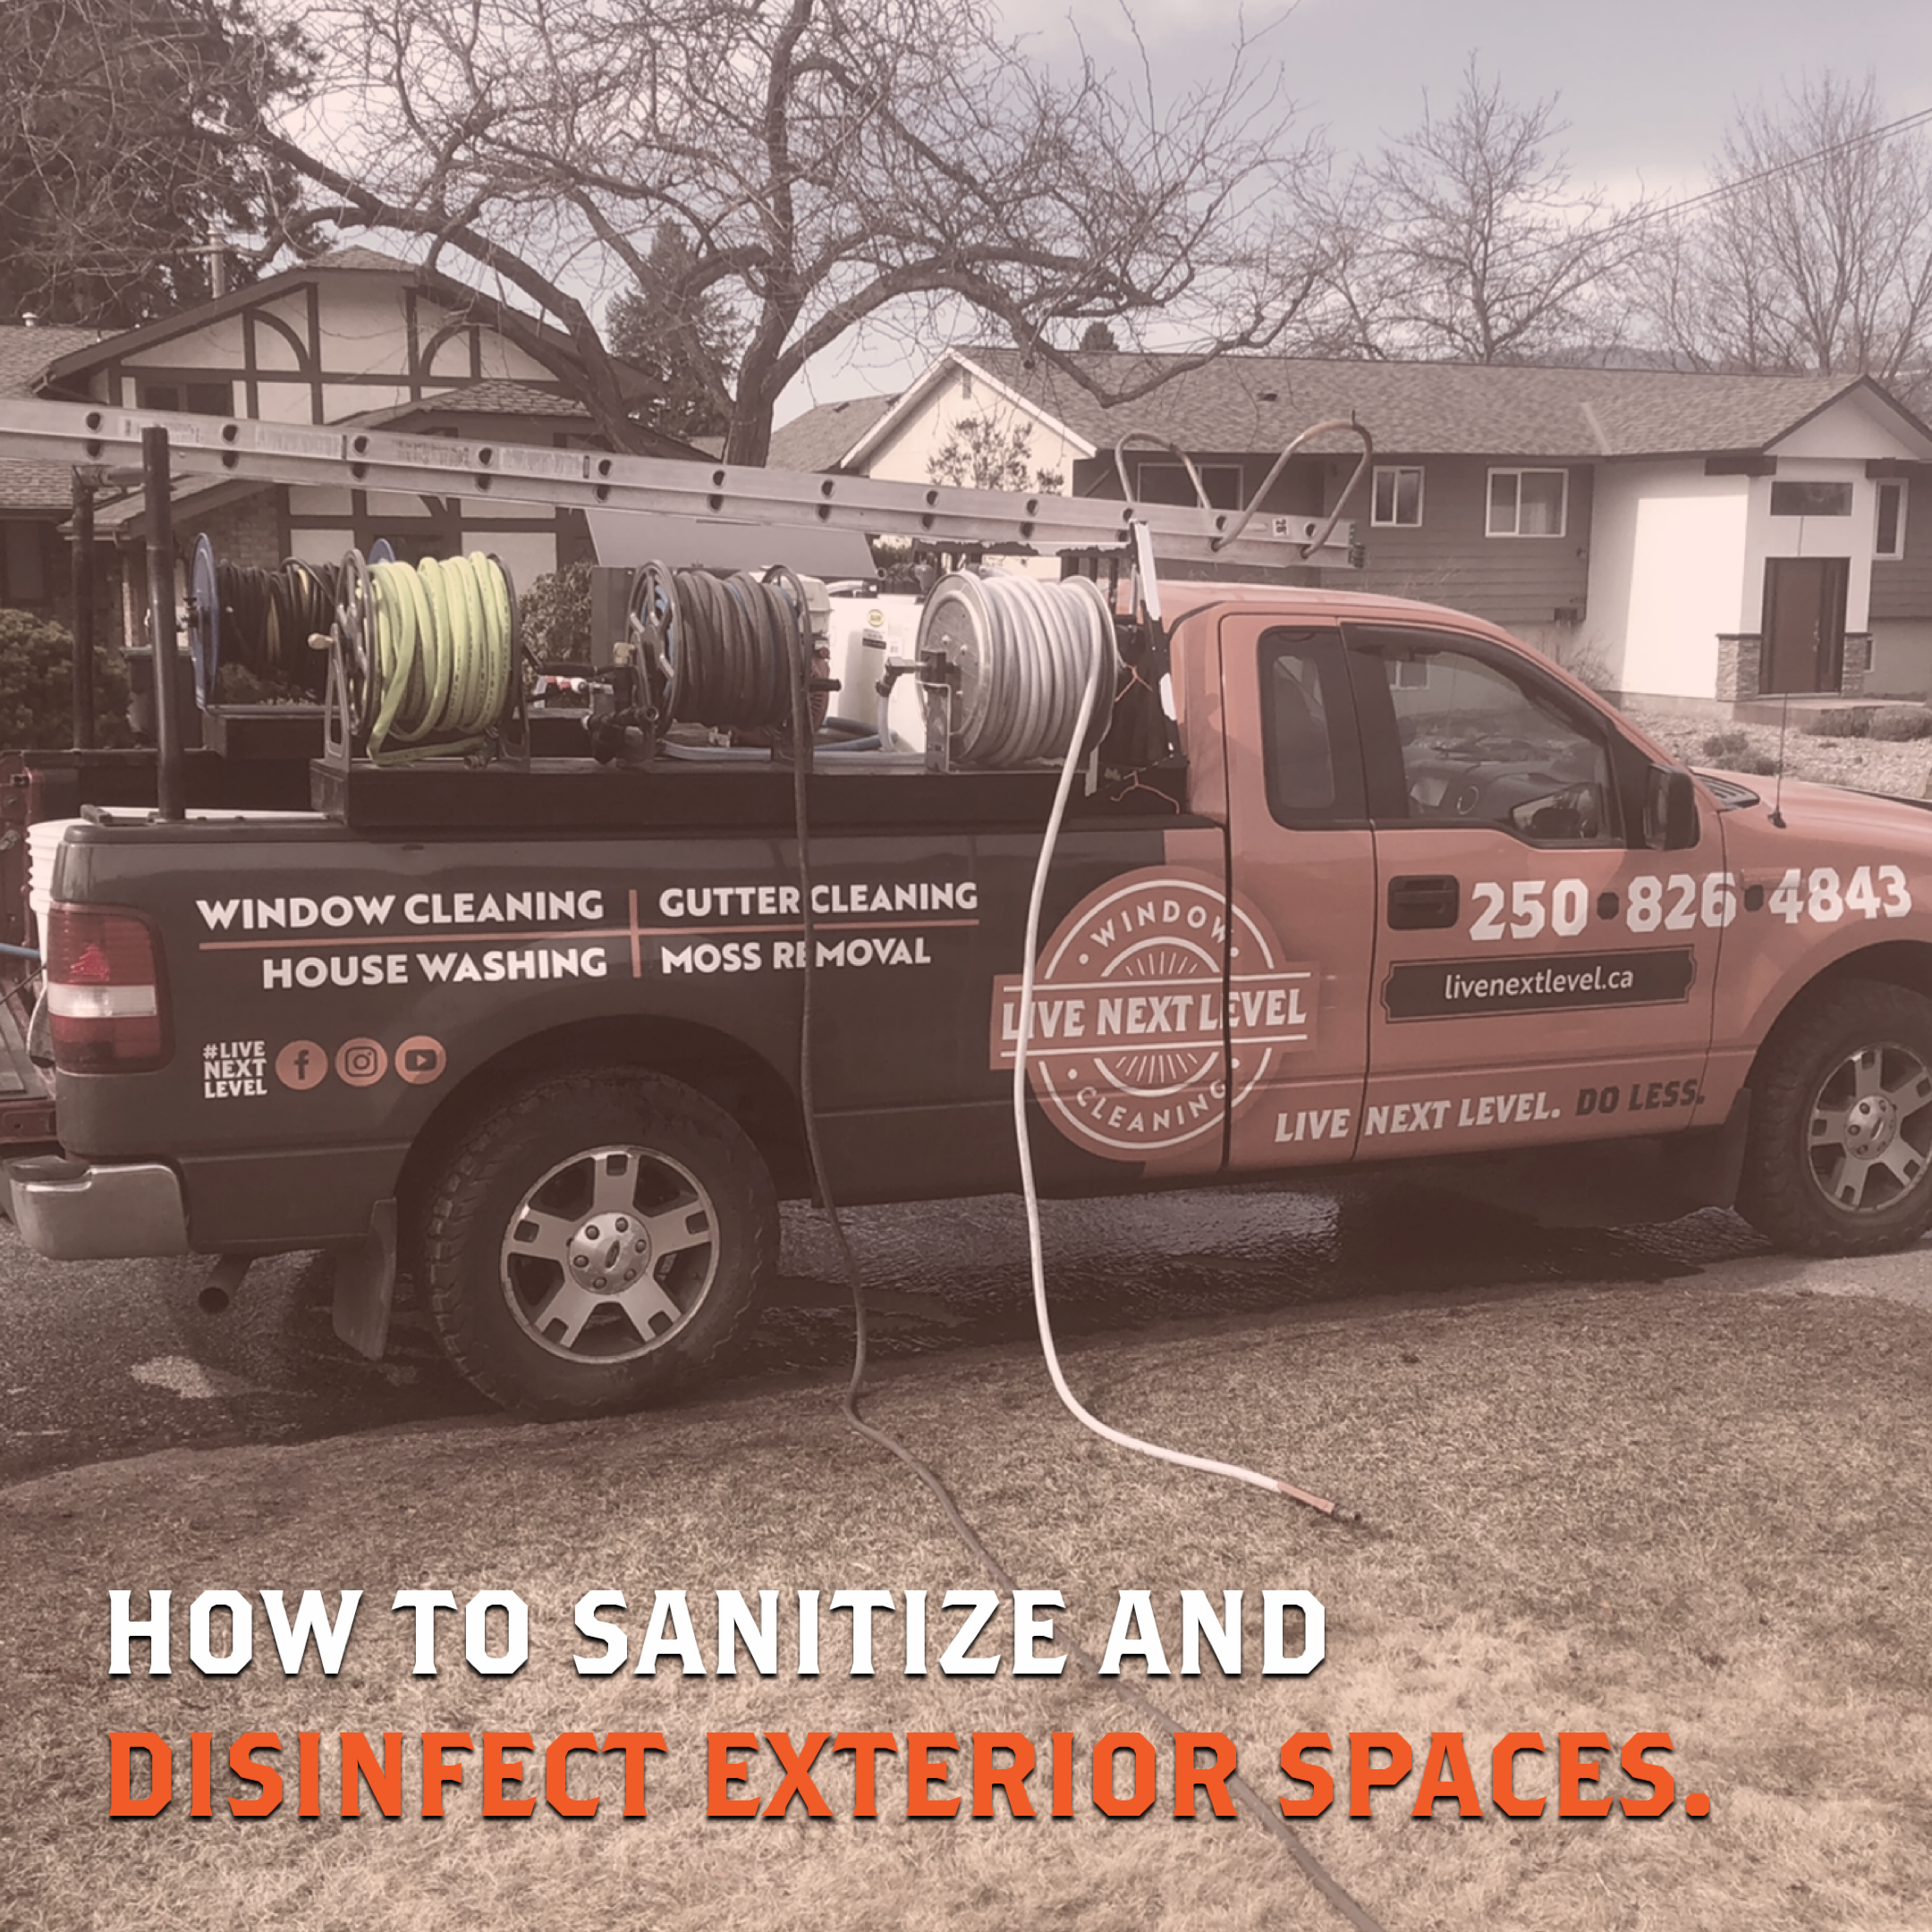 disinfect-exterior-spaces-next-level